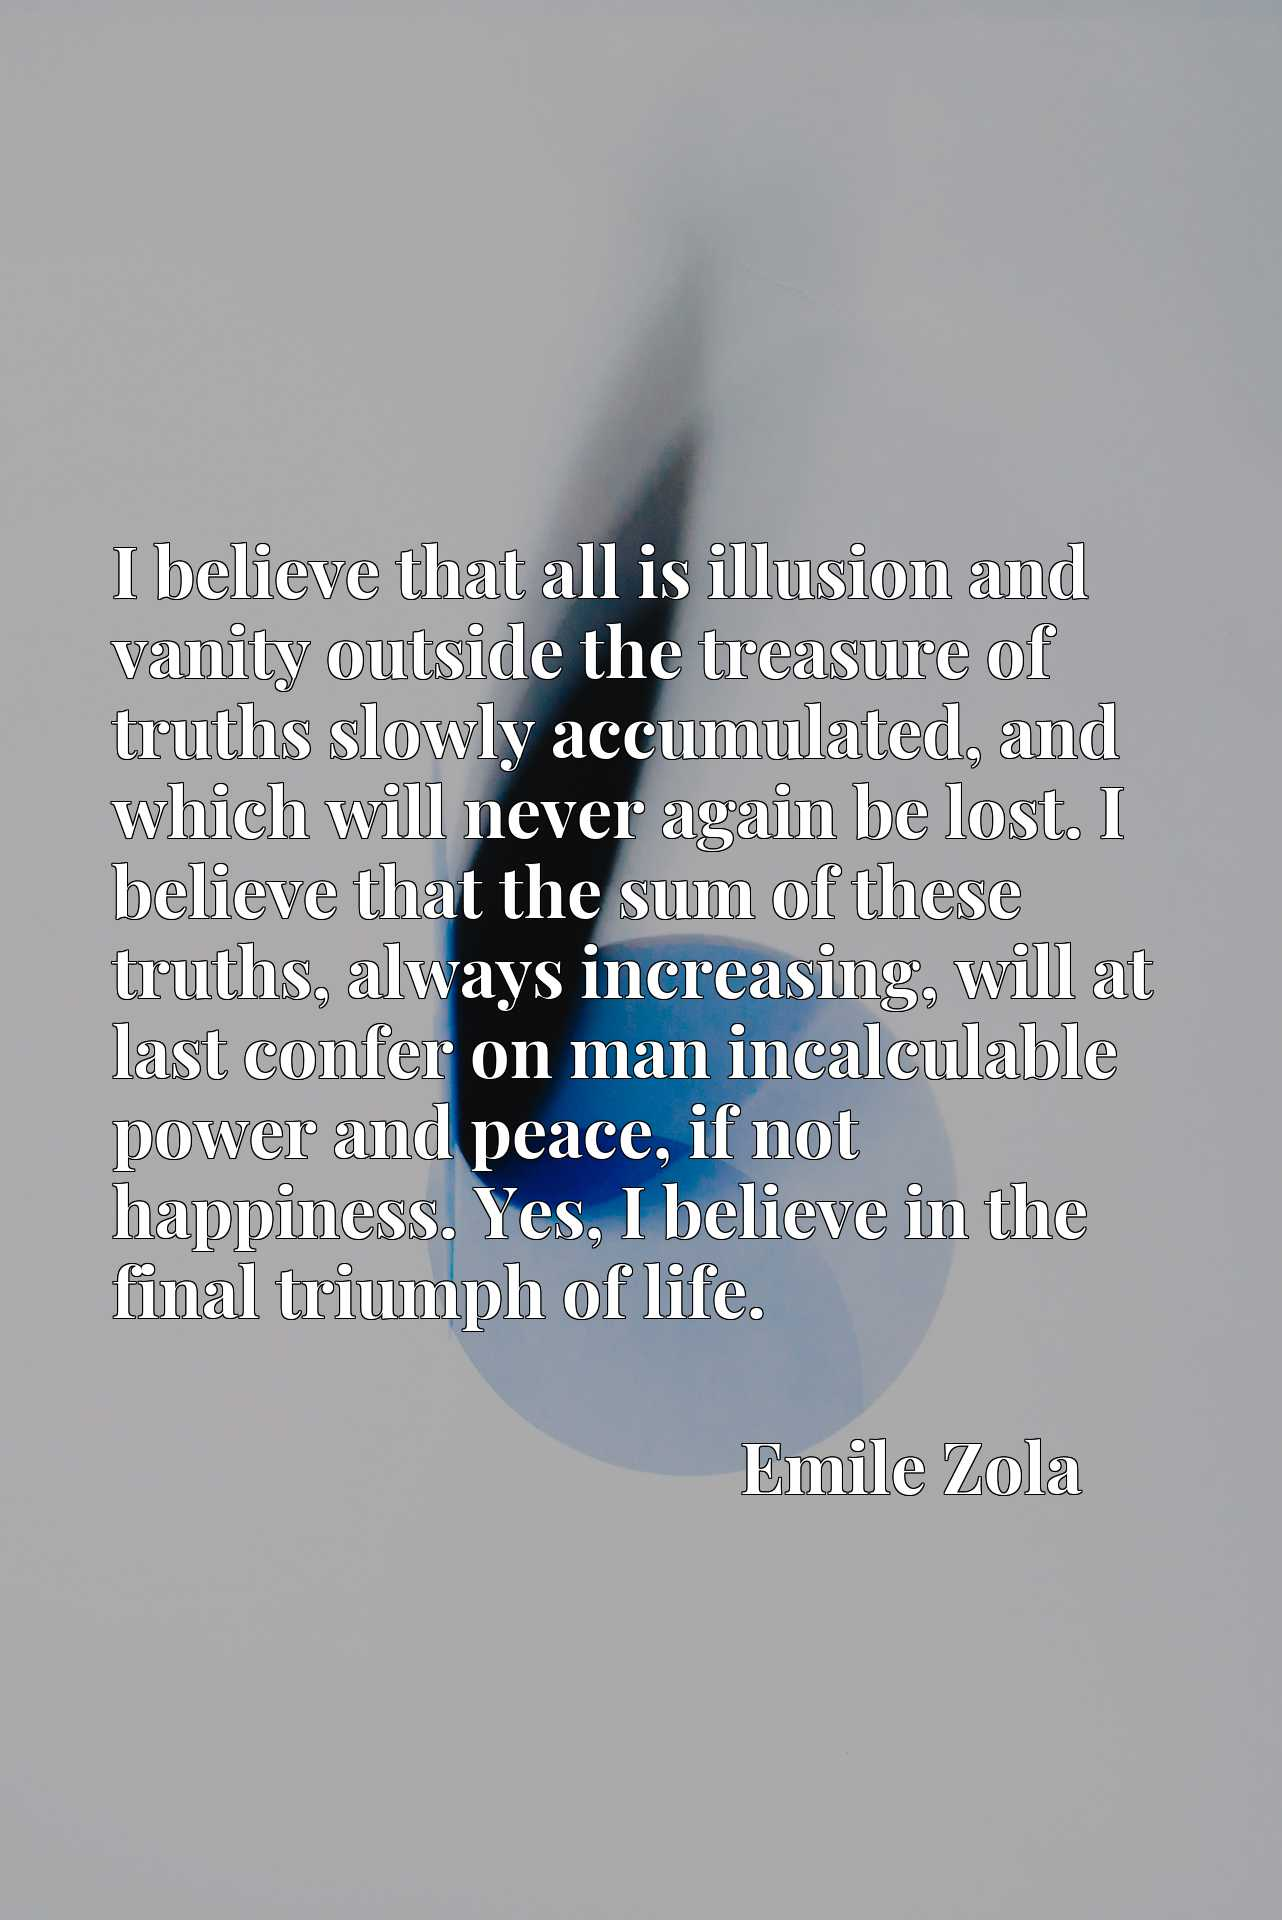 I believe that all is illusion and vanity outside the treasure of truths slowly accumulated, and which will never again be lost. I believe that the sum of these truths, always increasing, will at last confer on man incalculable power and peace, if not happiness. Yes, I believe in the final triumph of life.